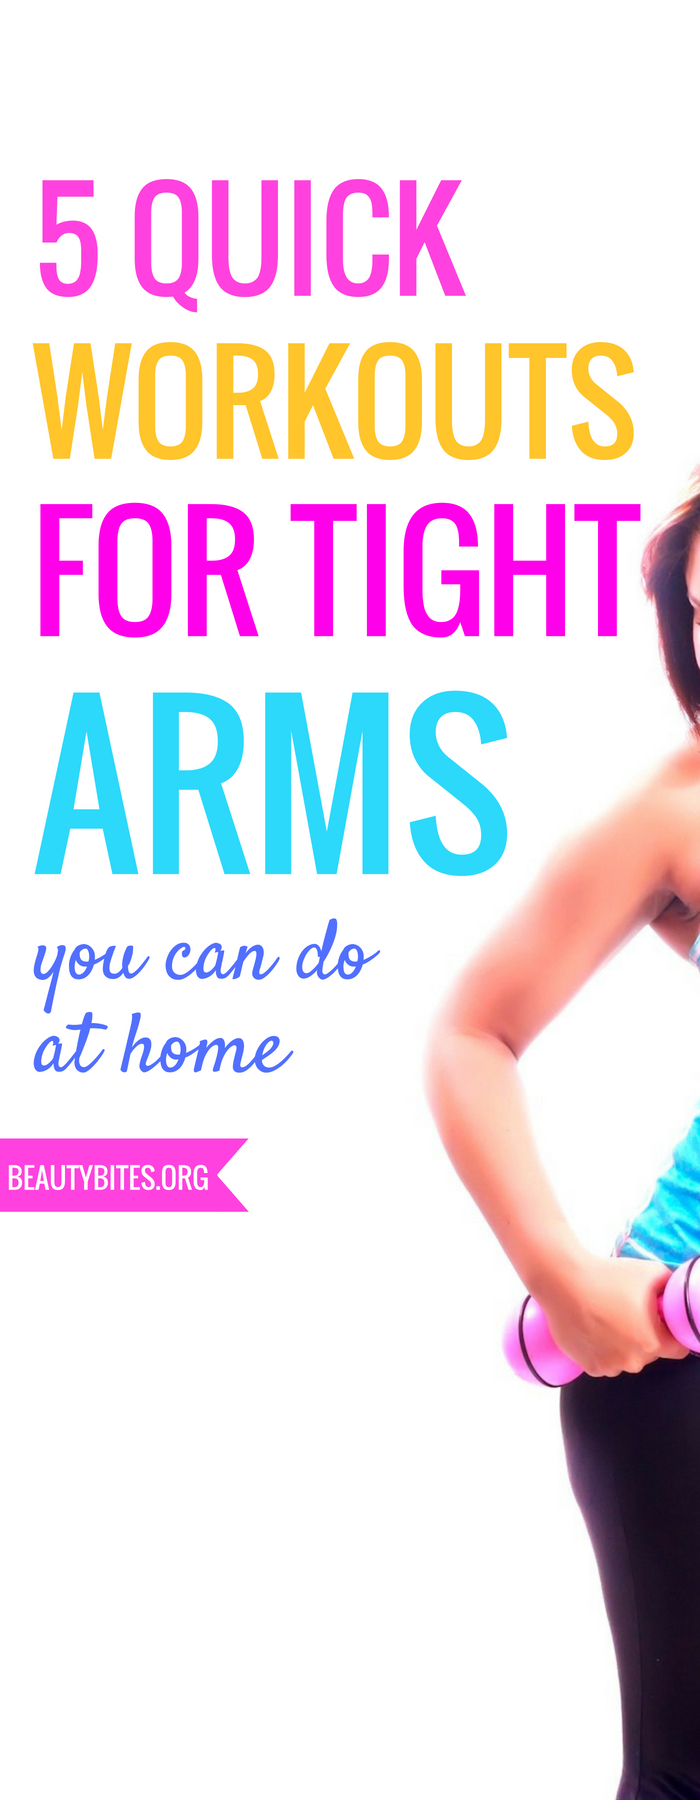 5 quick at home arm workouts for women! Tone your arms, get stronger & look great in a tank top (while waving) with these short exercise routines for women! You don't need any equipment and you can do these exercises really anywhere! * www.beautybites.org